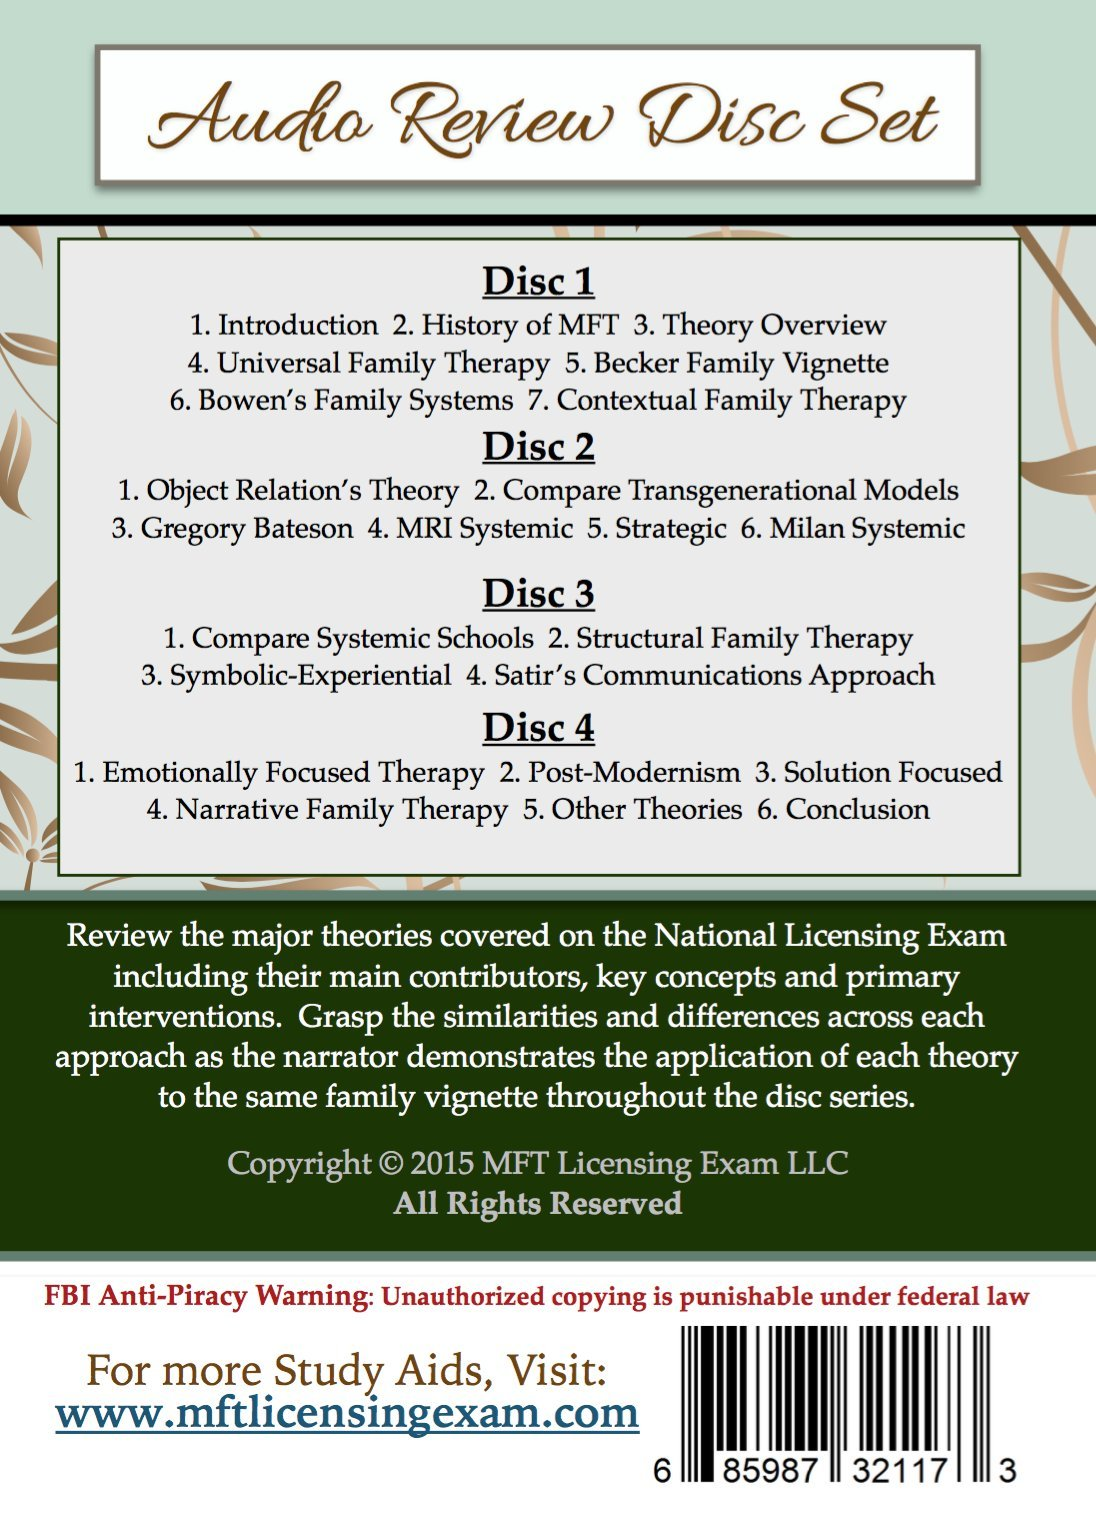 The national licensing exam for marriage and family therapy audio the national licensing exam for marriage and family therapy audio review disc set dmft lmft dr lucas a volini 0685987321173 amazon books biocorpaavc